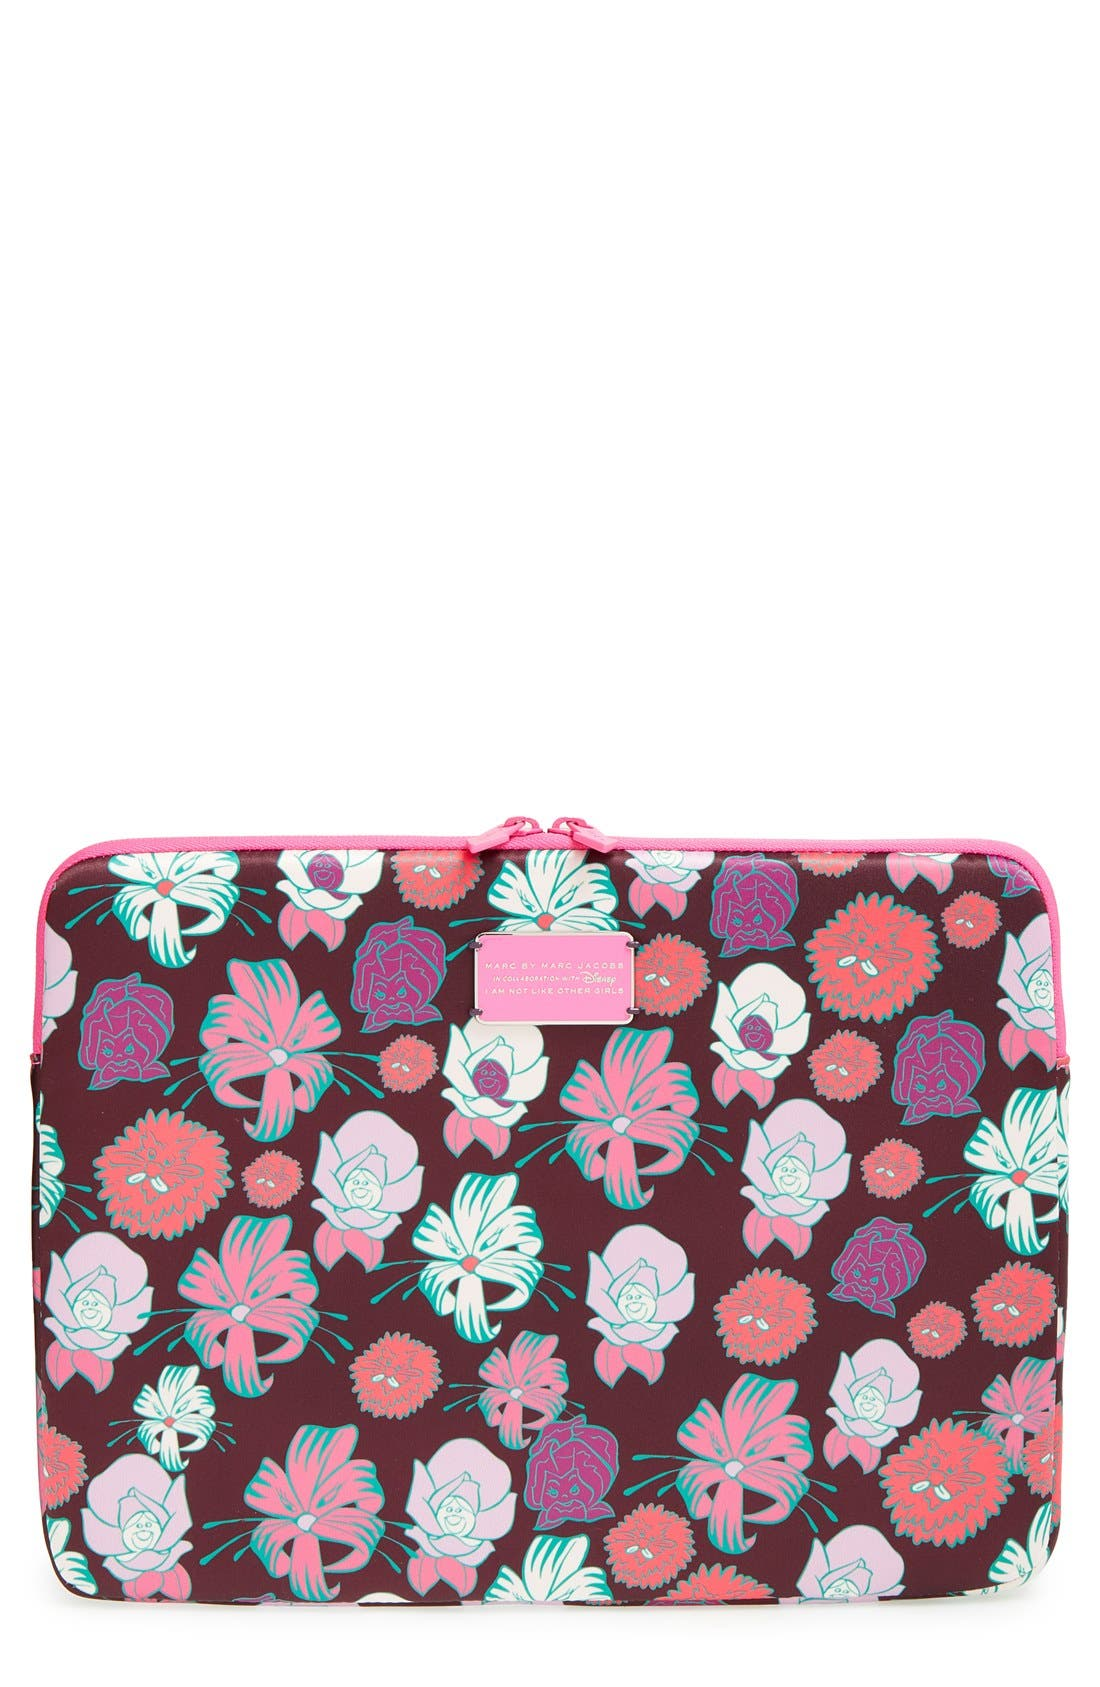 Alternate Image 1 Selected - MARC BY MARC JACOBS x Disney® 'Alice in Wonderland - Laughing Flowers' Computer Case (13 Inch)